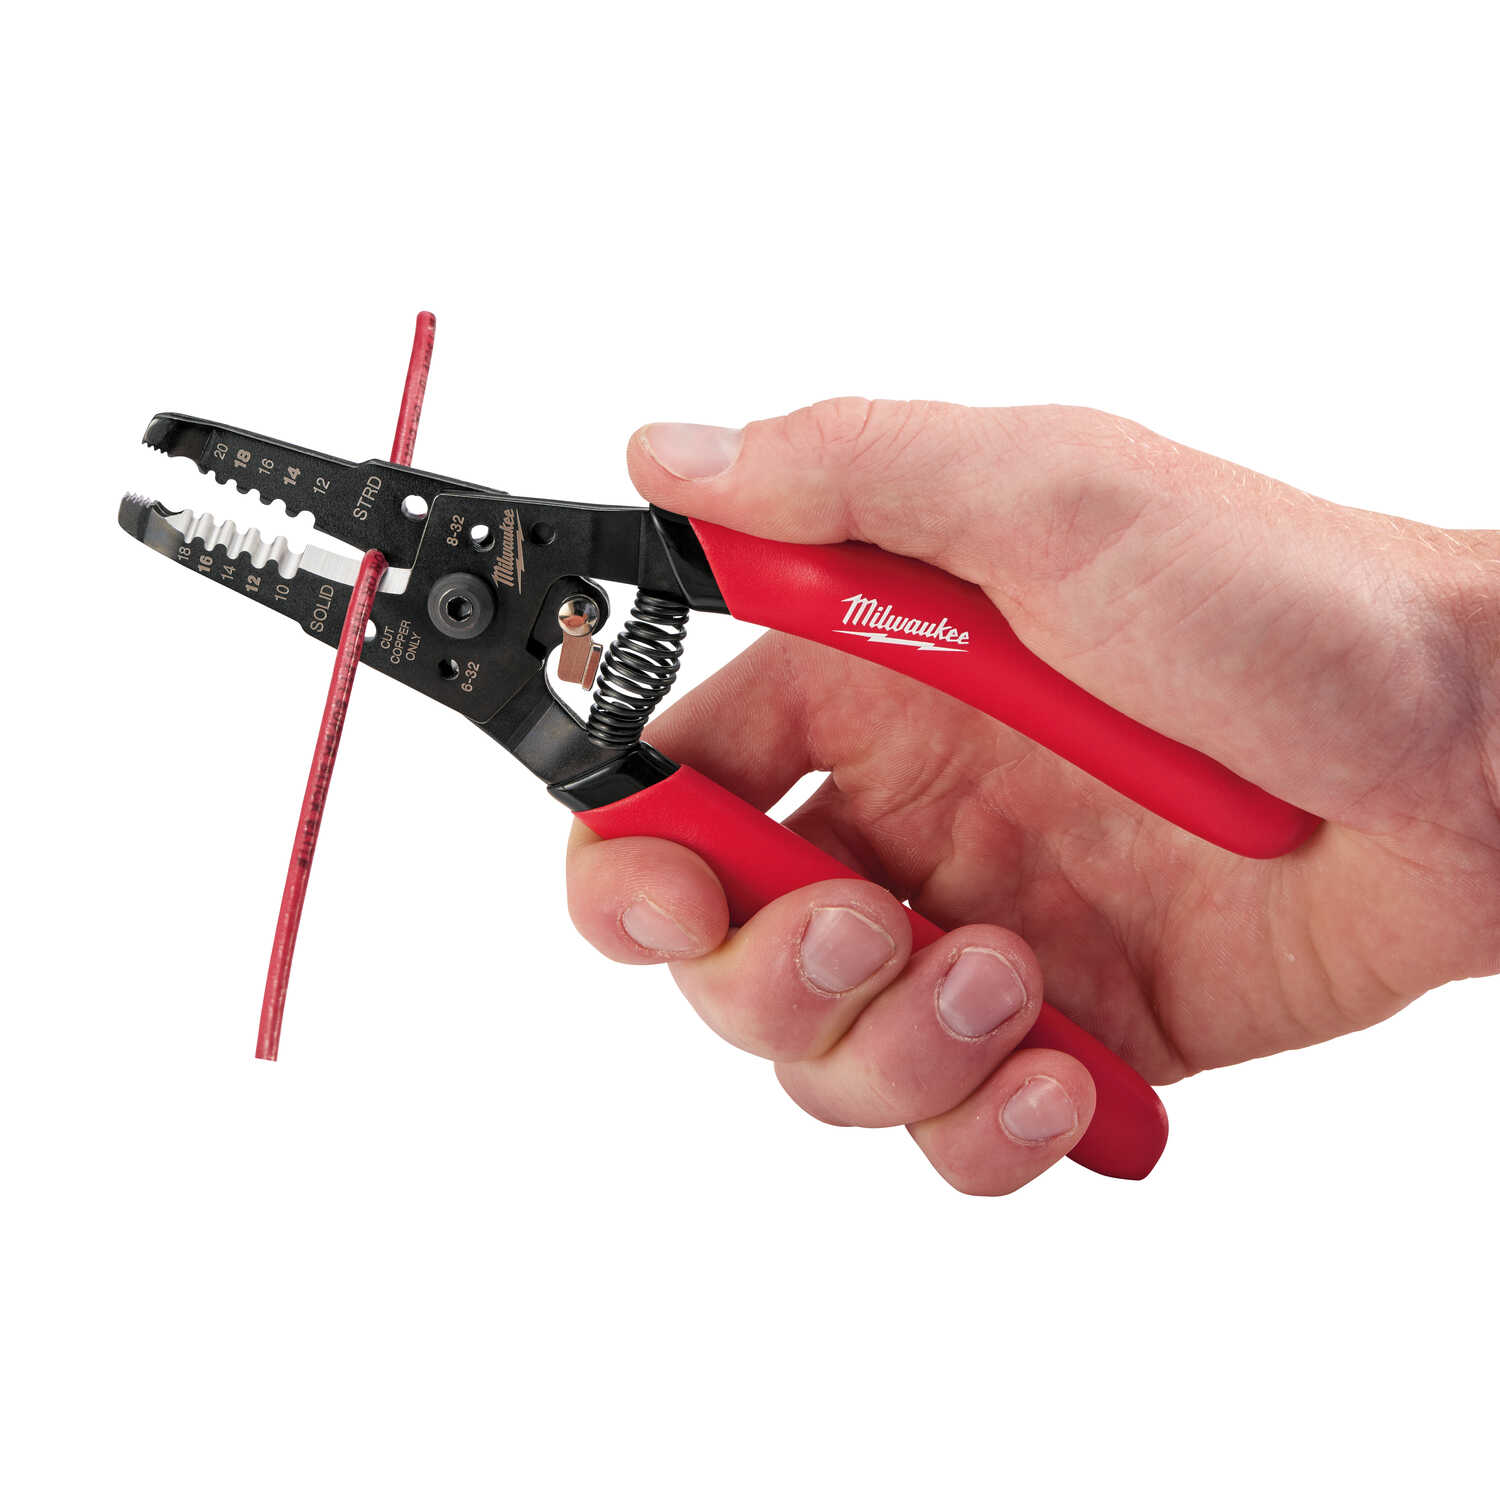 Milwaukee  7-1/8 in. Metal  Wire Stripper/Cutter/Crimper  Red  1 pk